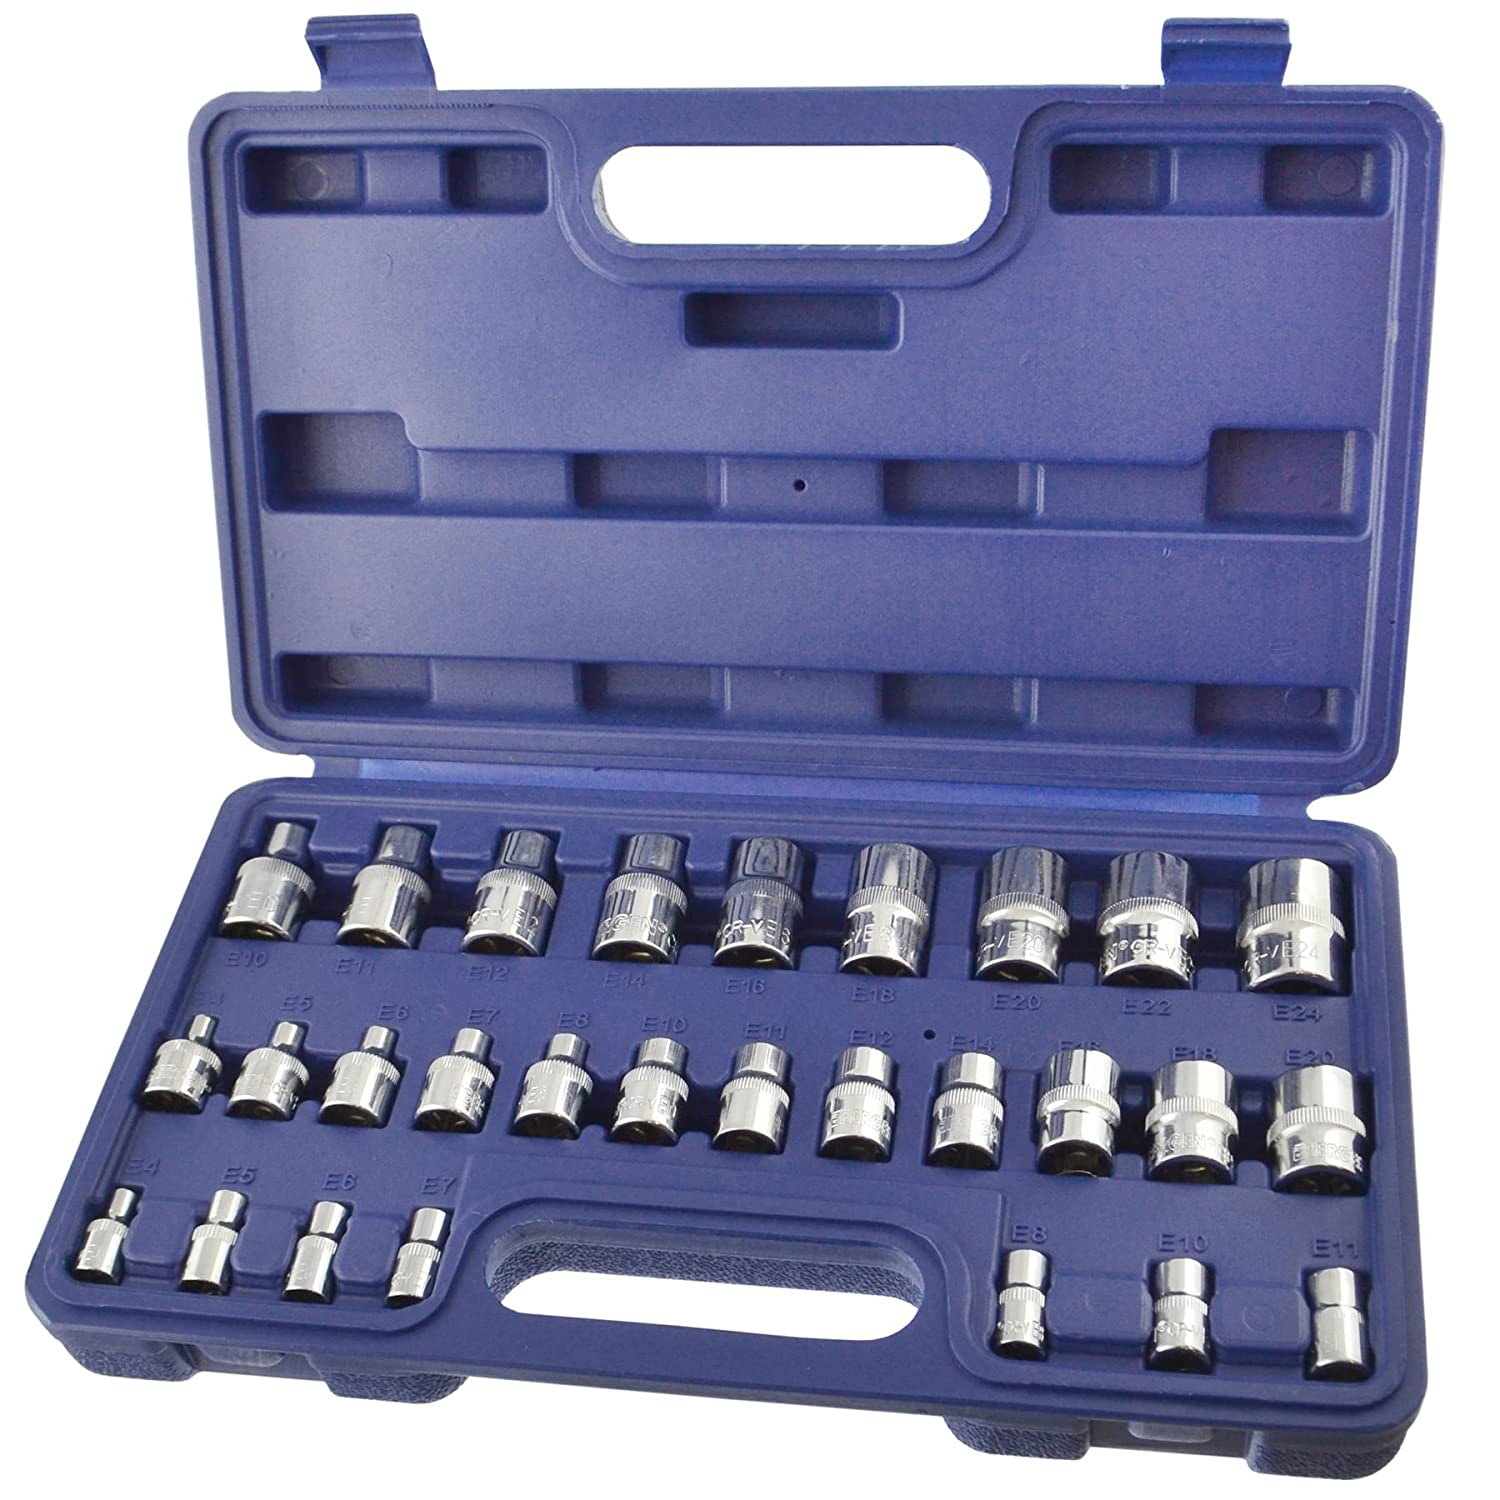 Female Star / Torx Sockets 1/4' / 3/8' And 1/2' Drive E4 - E24 By BERGEN AT210 AB Tools